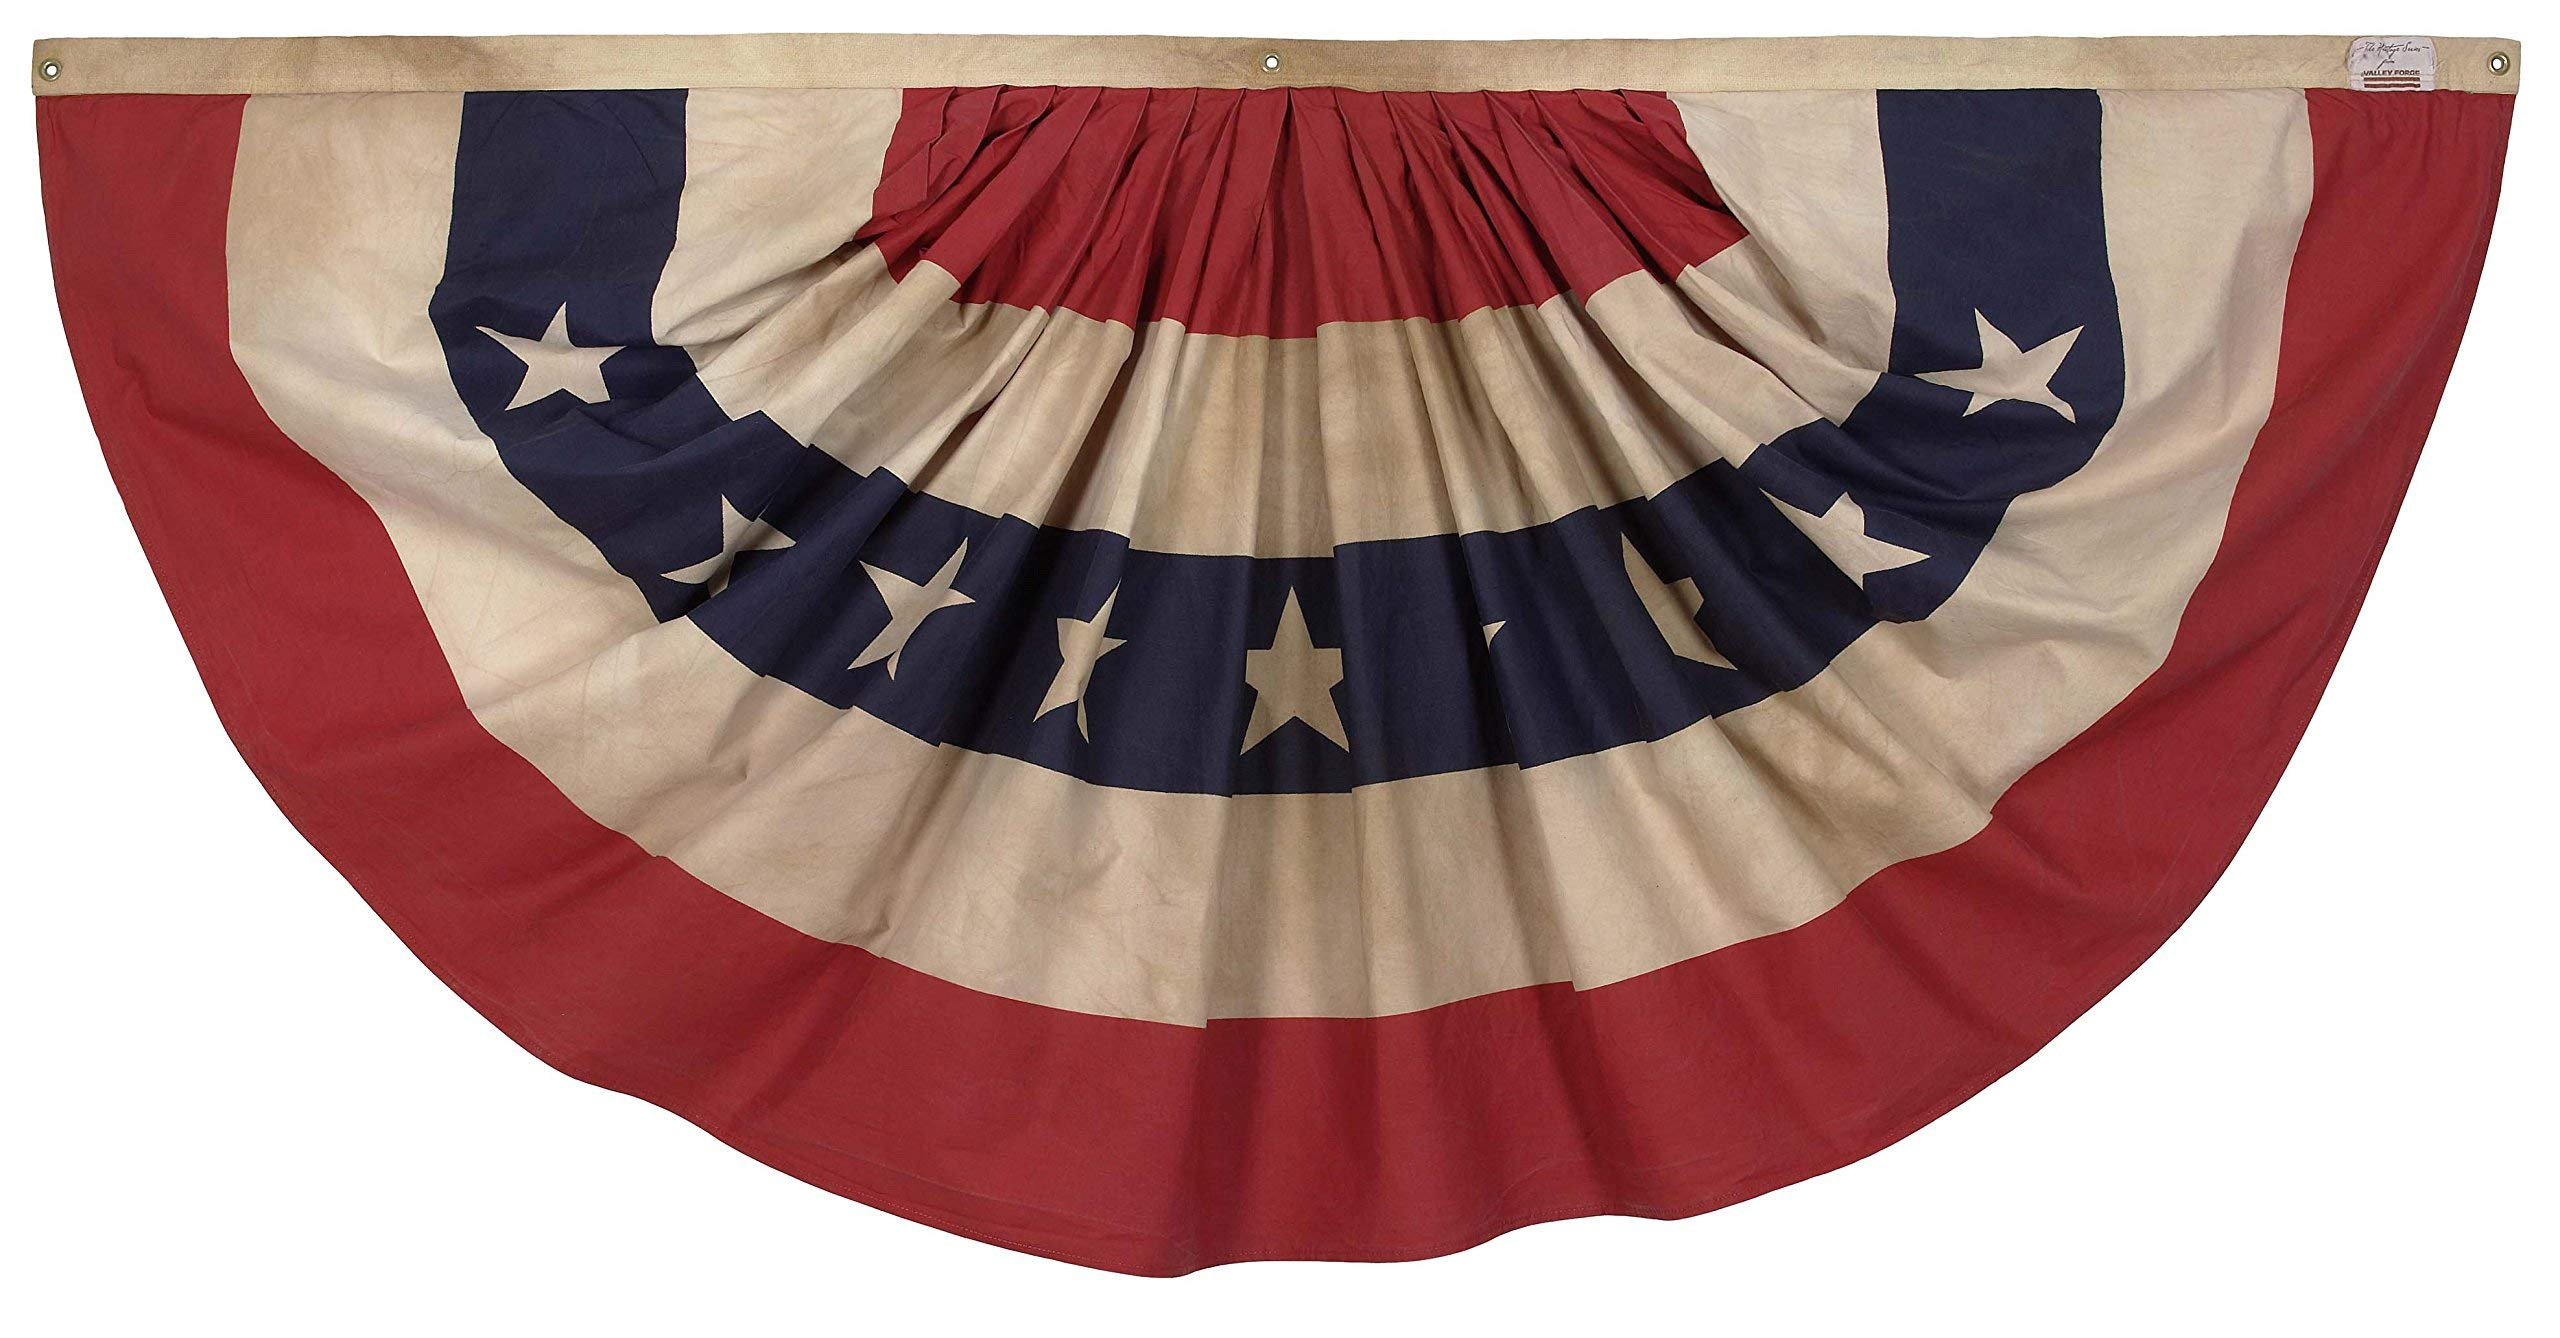 Valley Forge, Bunting Banner, Cotton, 3' x 6', 100% Made in USA, Heritage Series, Antiqued Striped Full Fan Bunting (Renewed)